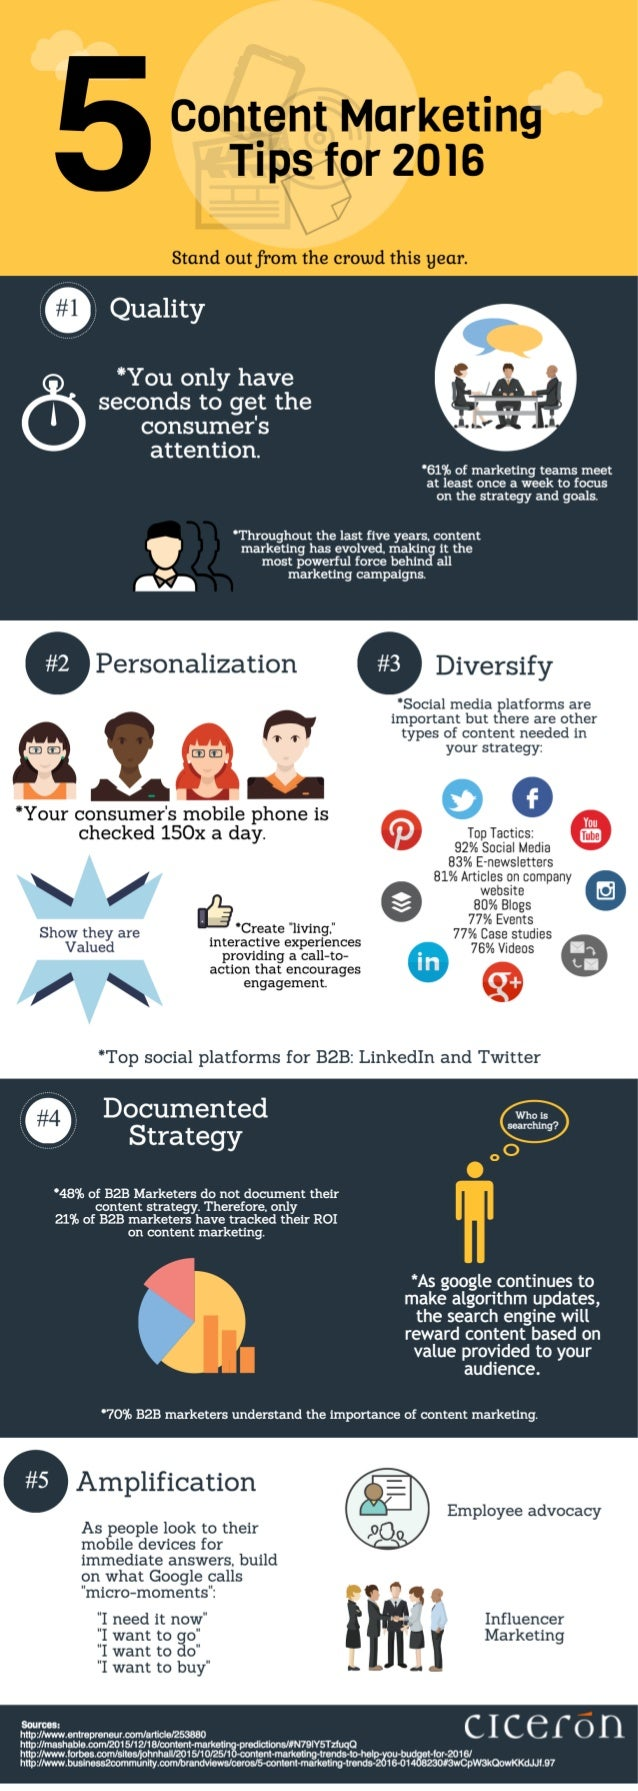 5 Content Marketing Tips to Stand Out in 2016 [Infographic]